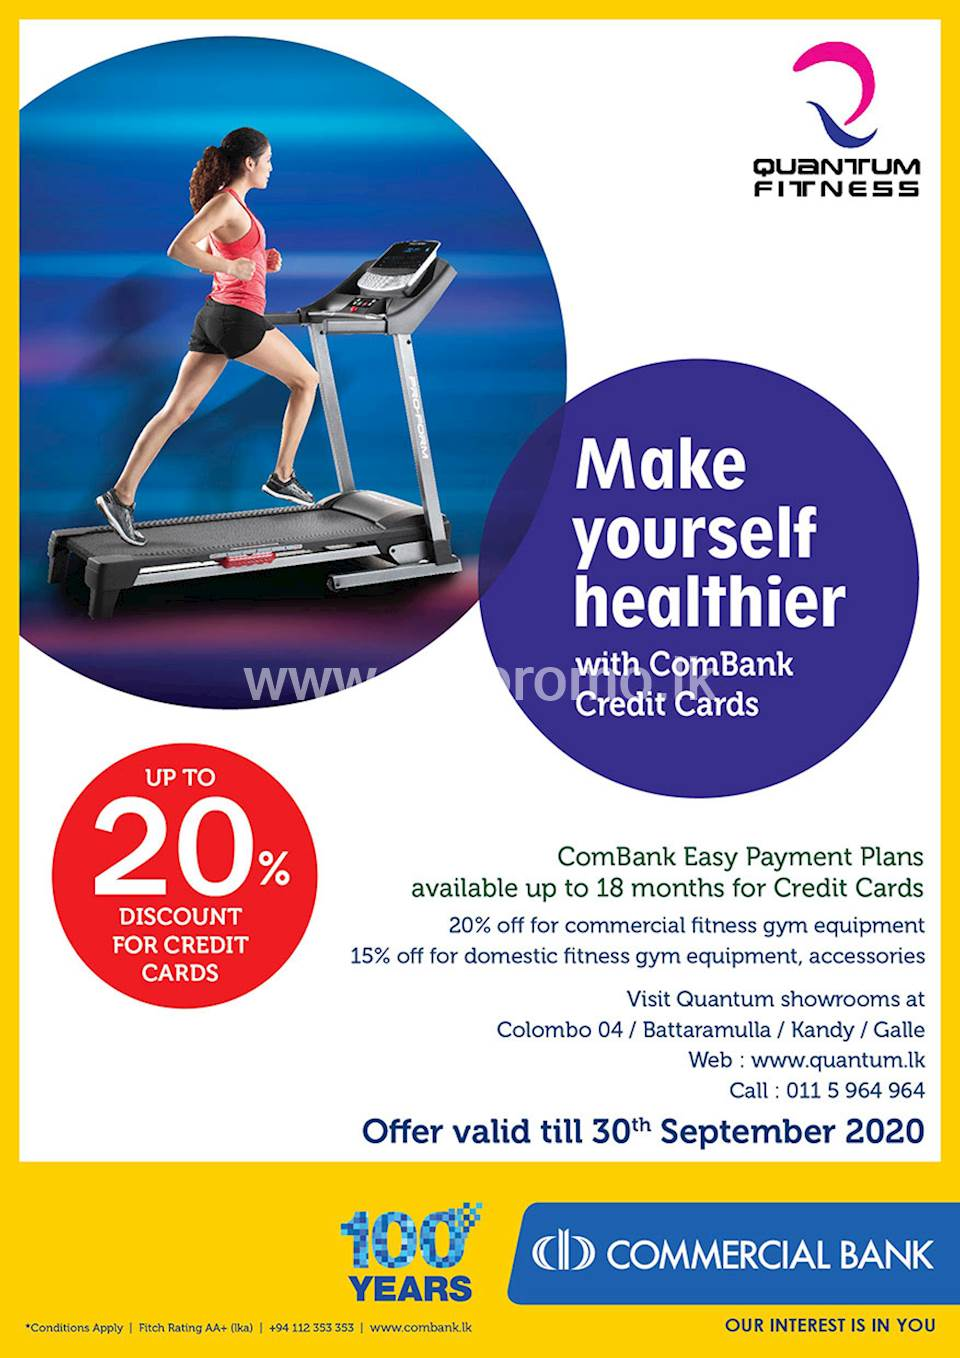 Up to 20% discount with ComBank Credit Cards at Quantam fitness